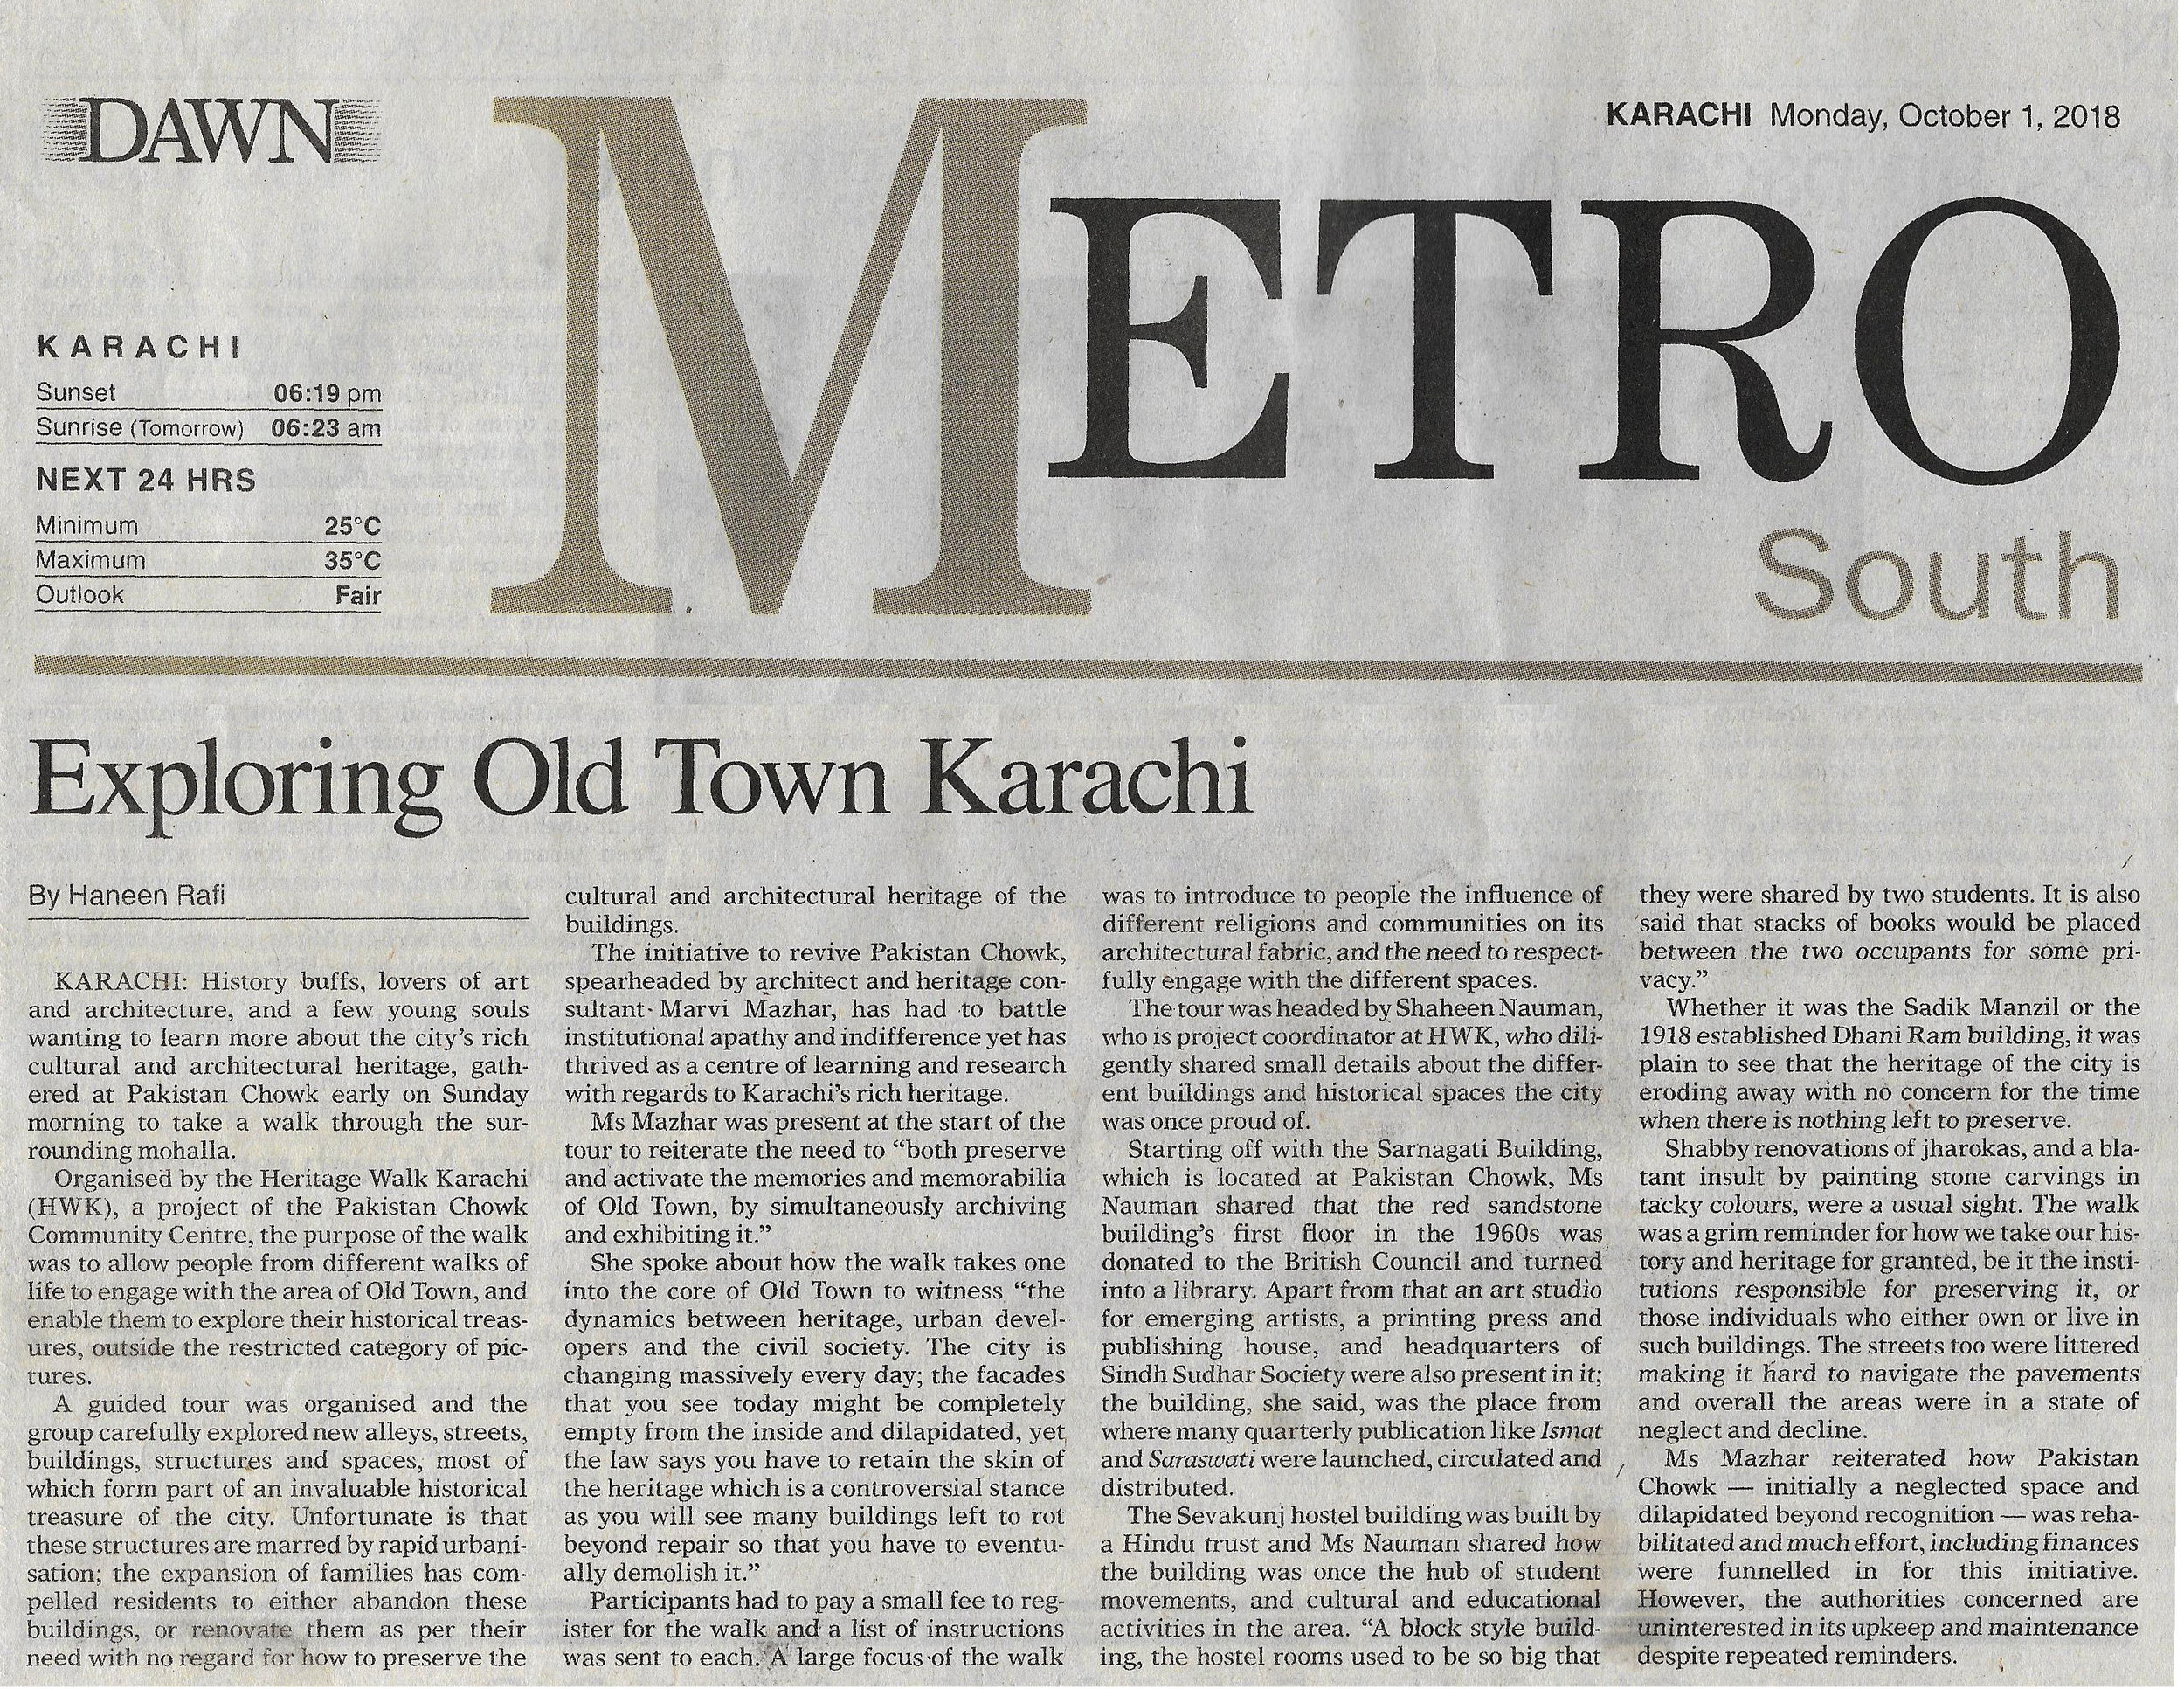 Heritage Walk Karachi is a project of Pakistan Chowk Community Centre, initiated by Marvi Mazhar. The Purpose of the walk is to allow people from different walks of life to engage with the area of Old Town and enable them to explore their historical treasures.  https://epaper.dawn.com/DetailNews.php?StoryText=01_10_2018_115_005#top